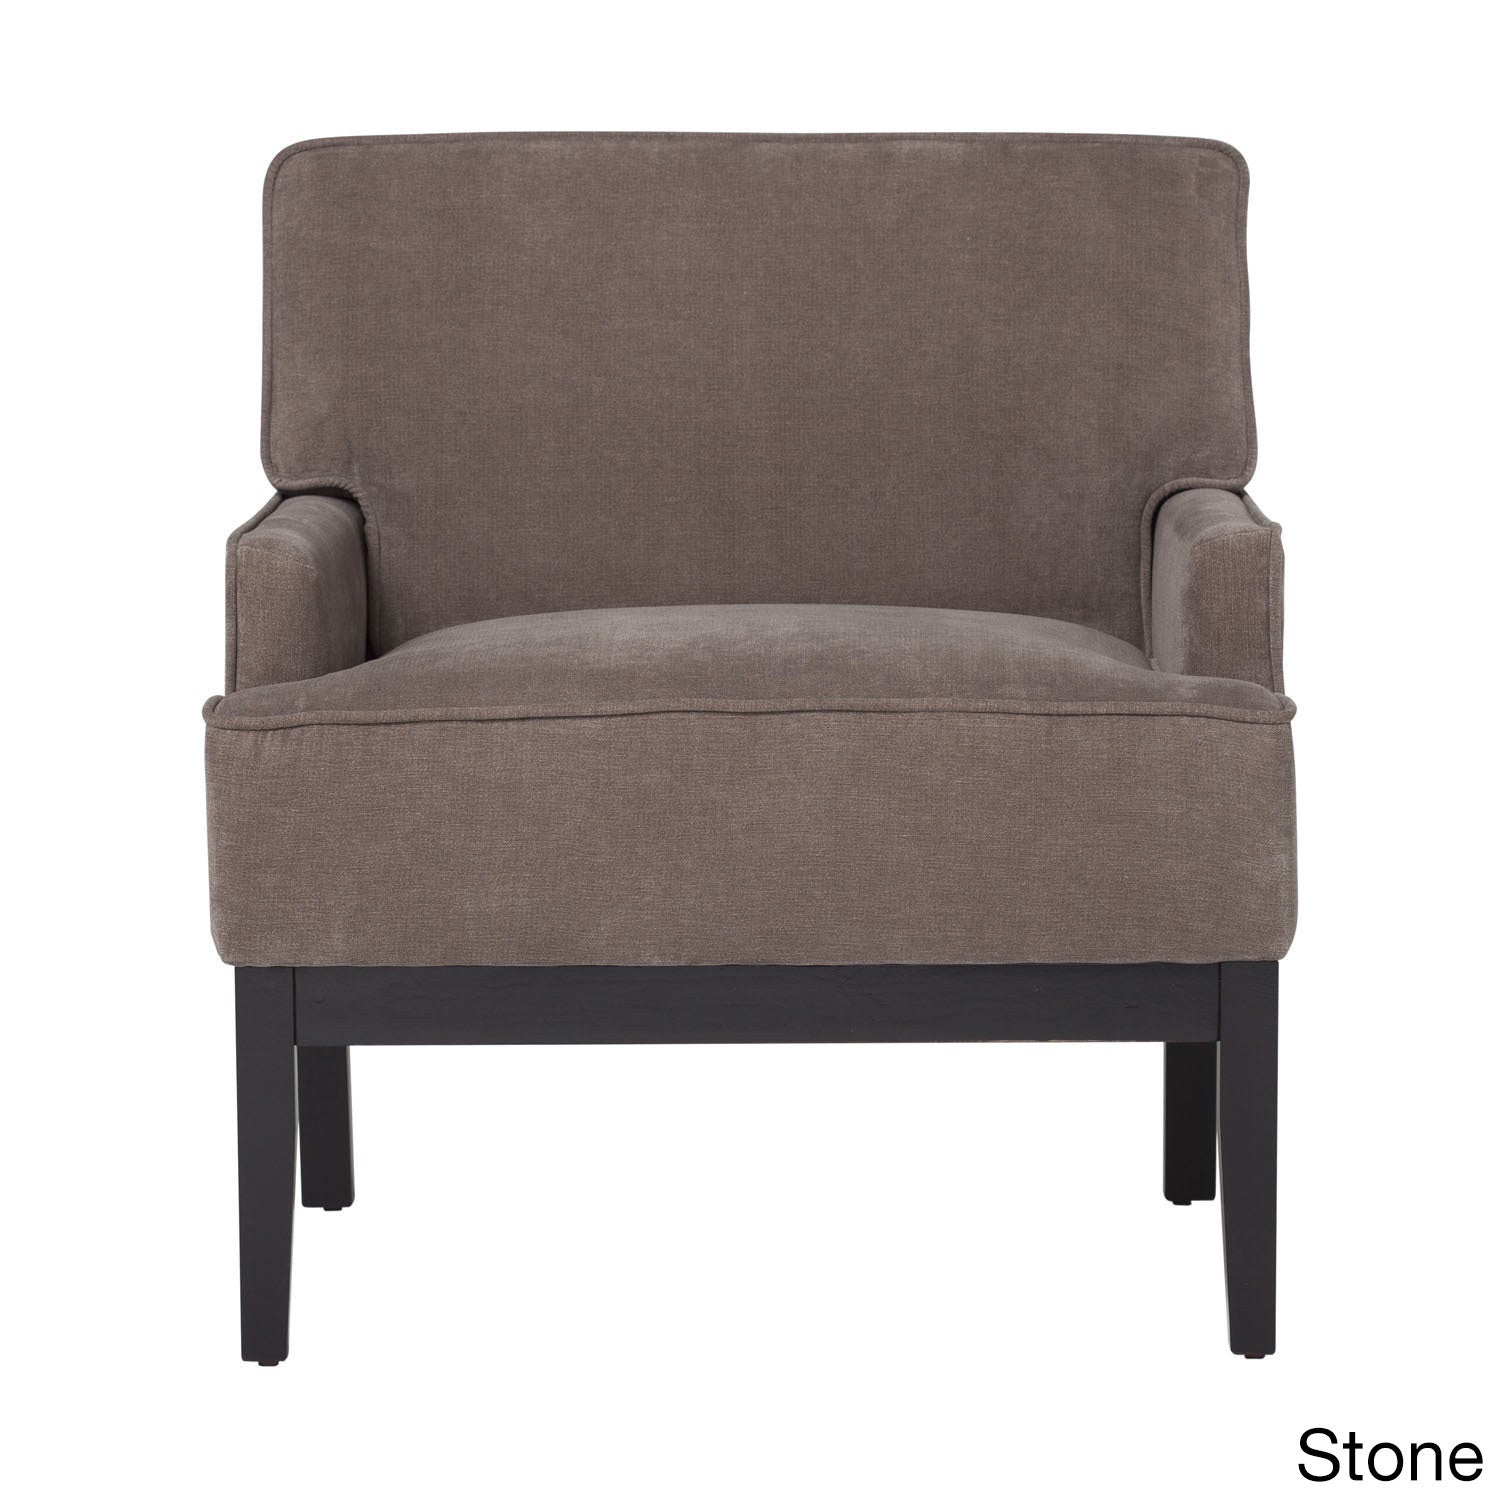 Offex Home Living Room Polyester Fabric Parapet Chair (St...